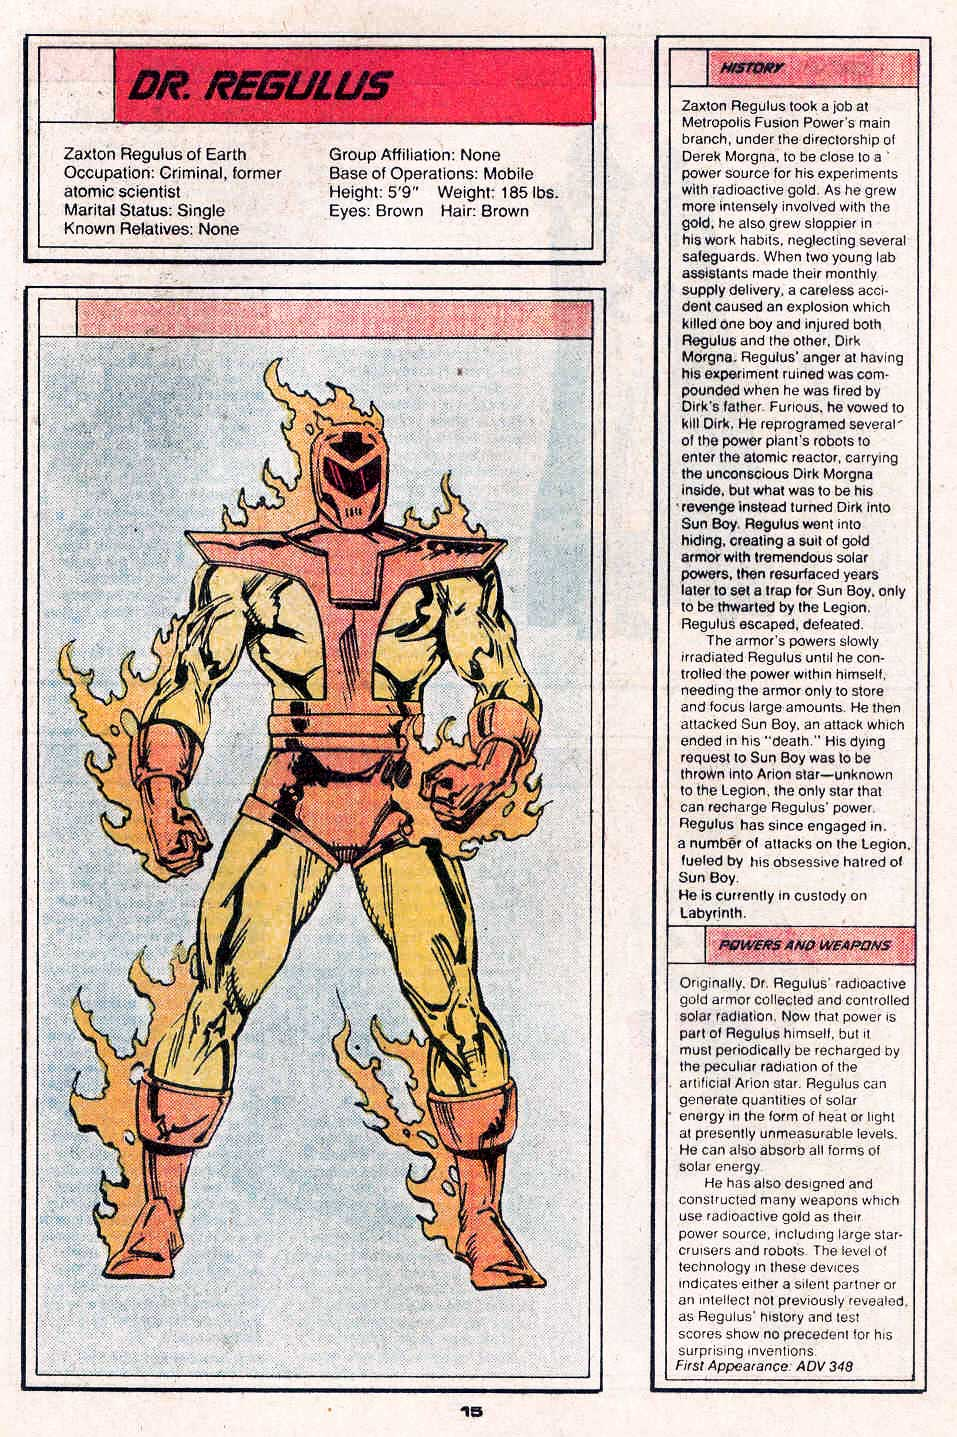 Dr Regulus by Ron Frenz and Colleen Doran - Who's Who in the Legion of Super-Heroes #2